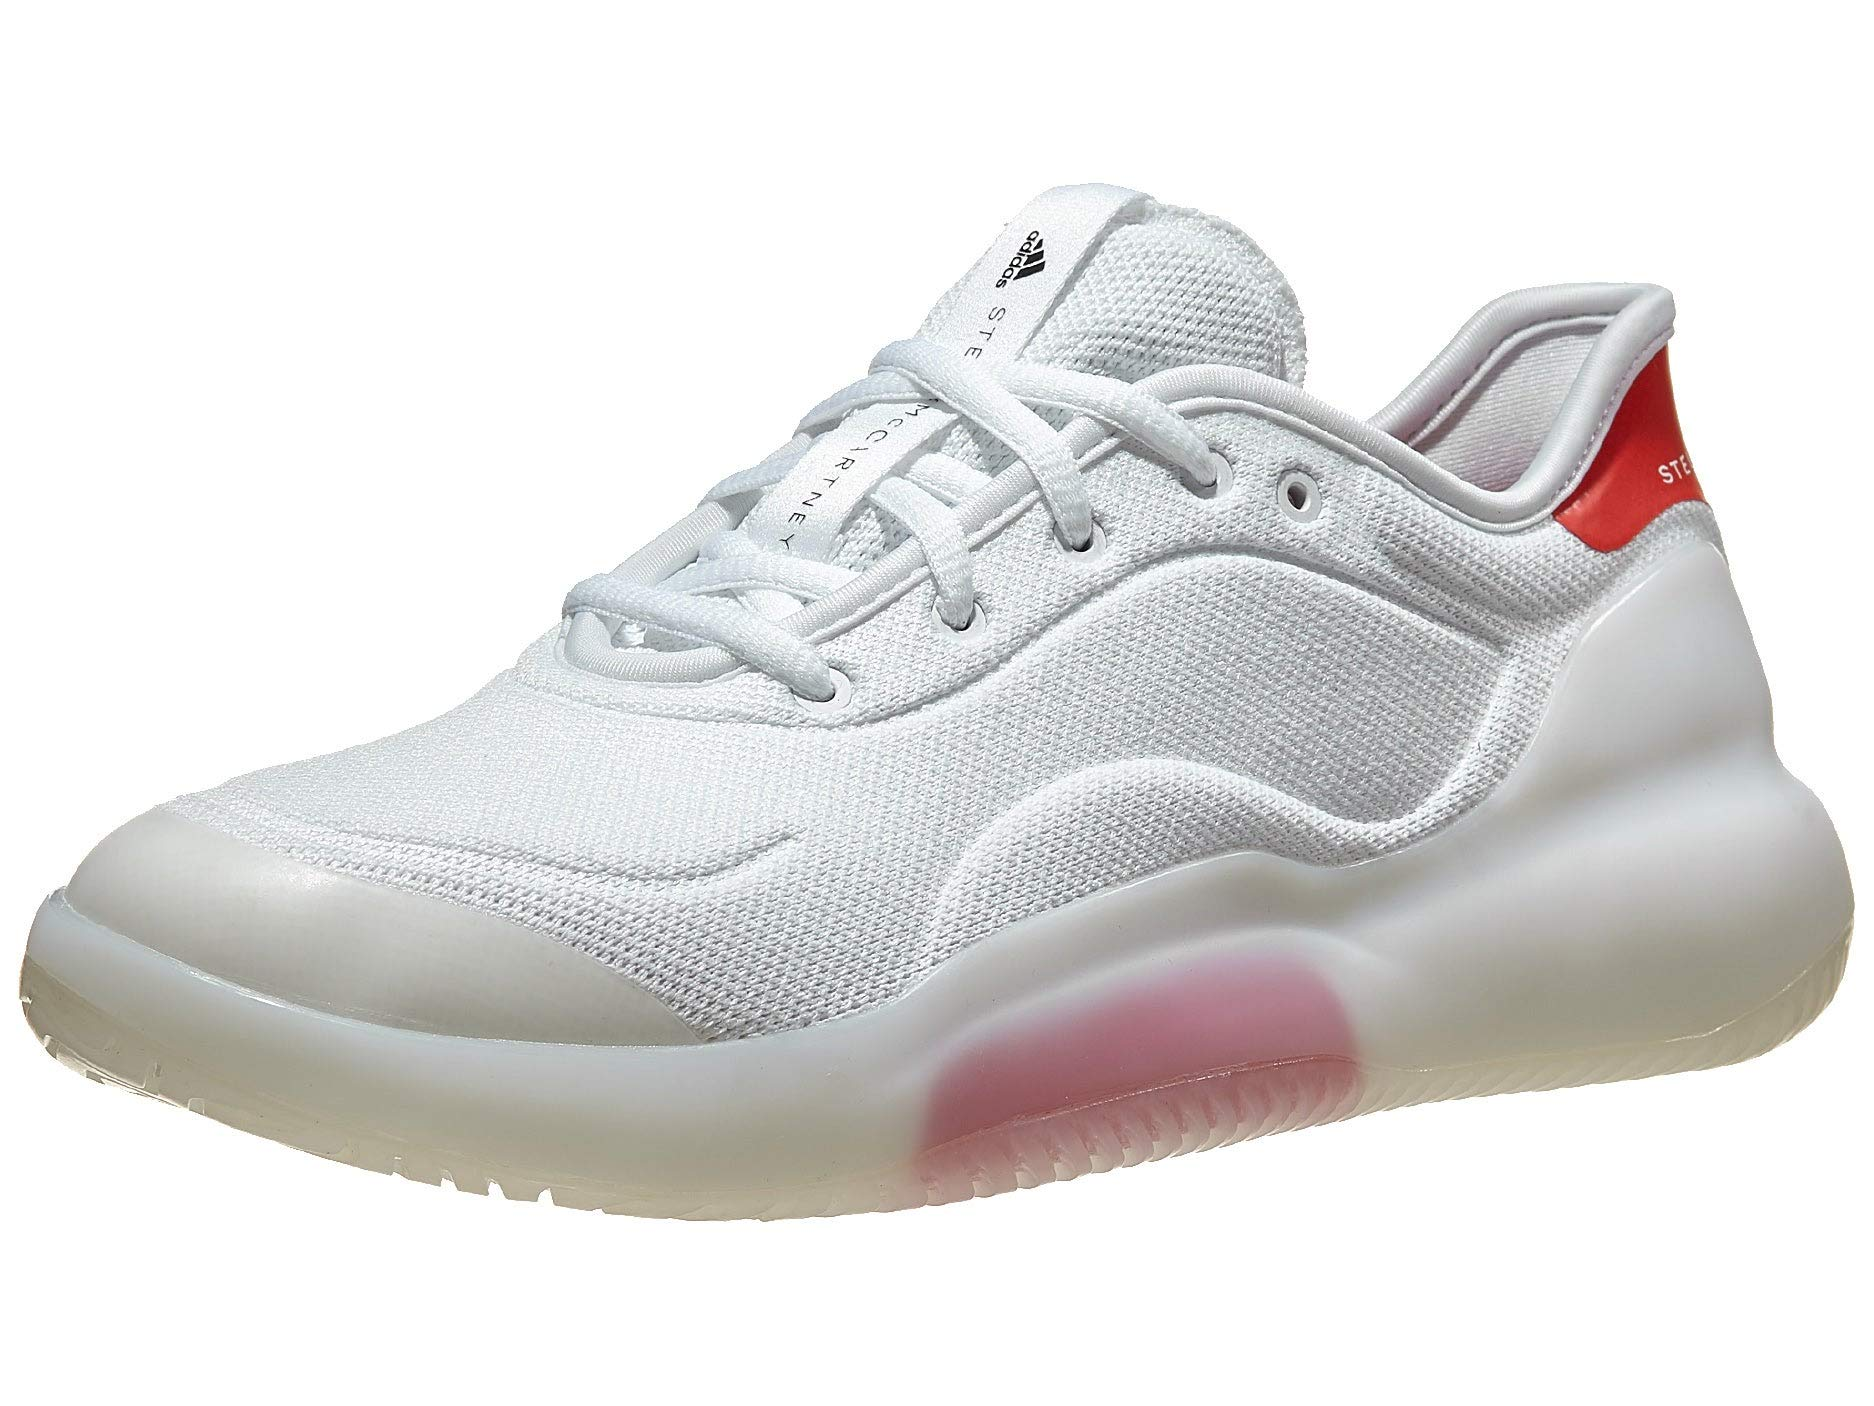 adidas Women's aSMC Court Boost WBD Tennis Shoe, White/Active Red/Utility Black, 11.5 M US by adidas